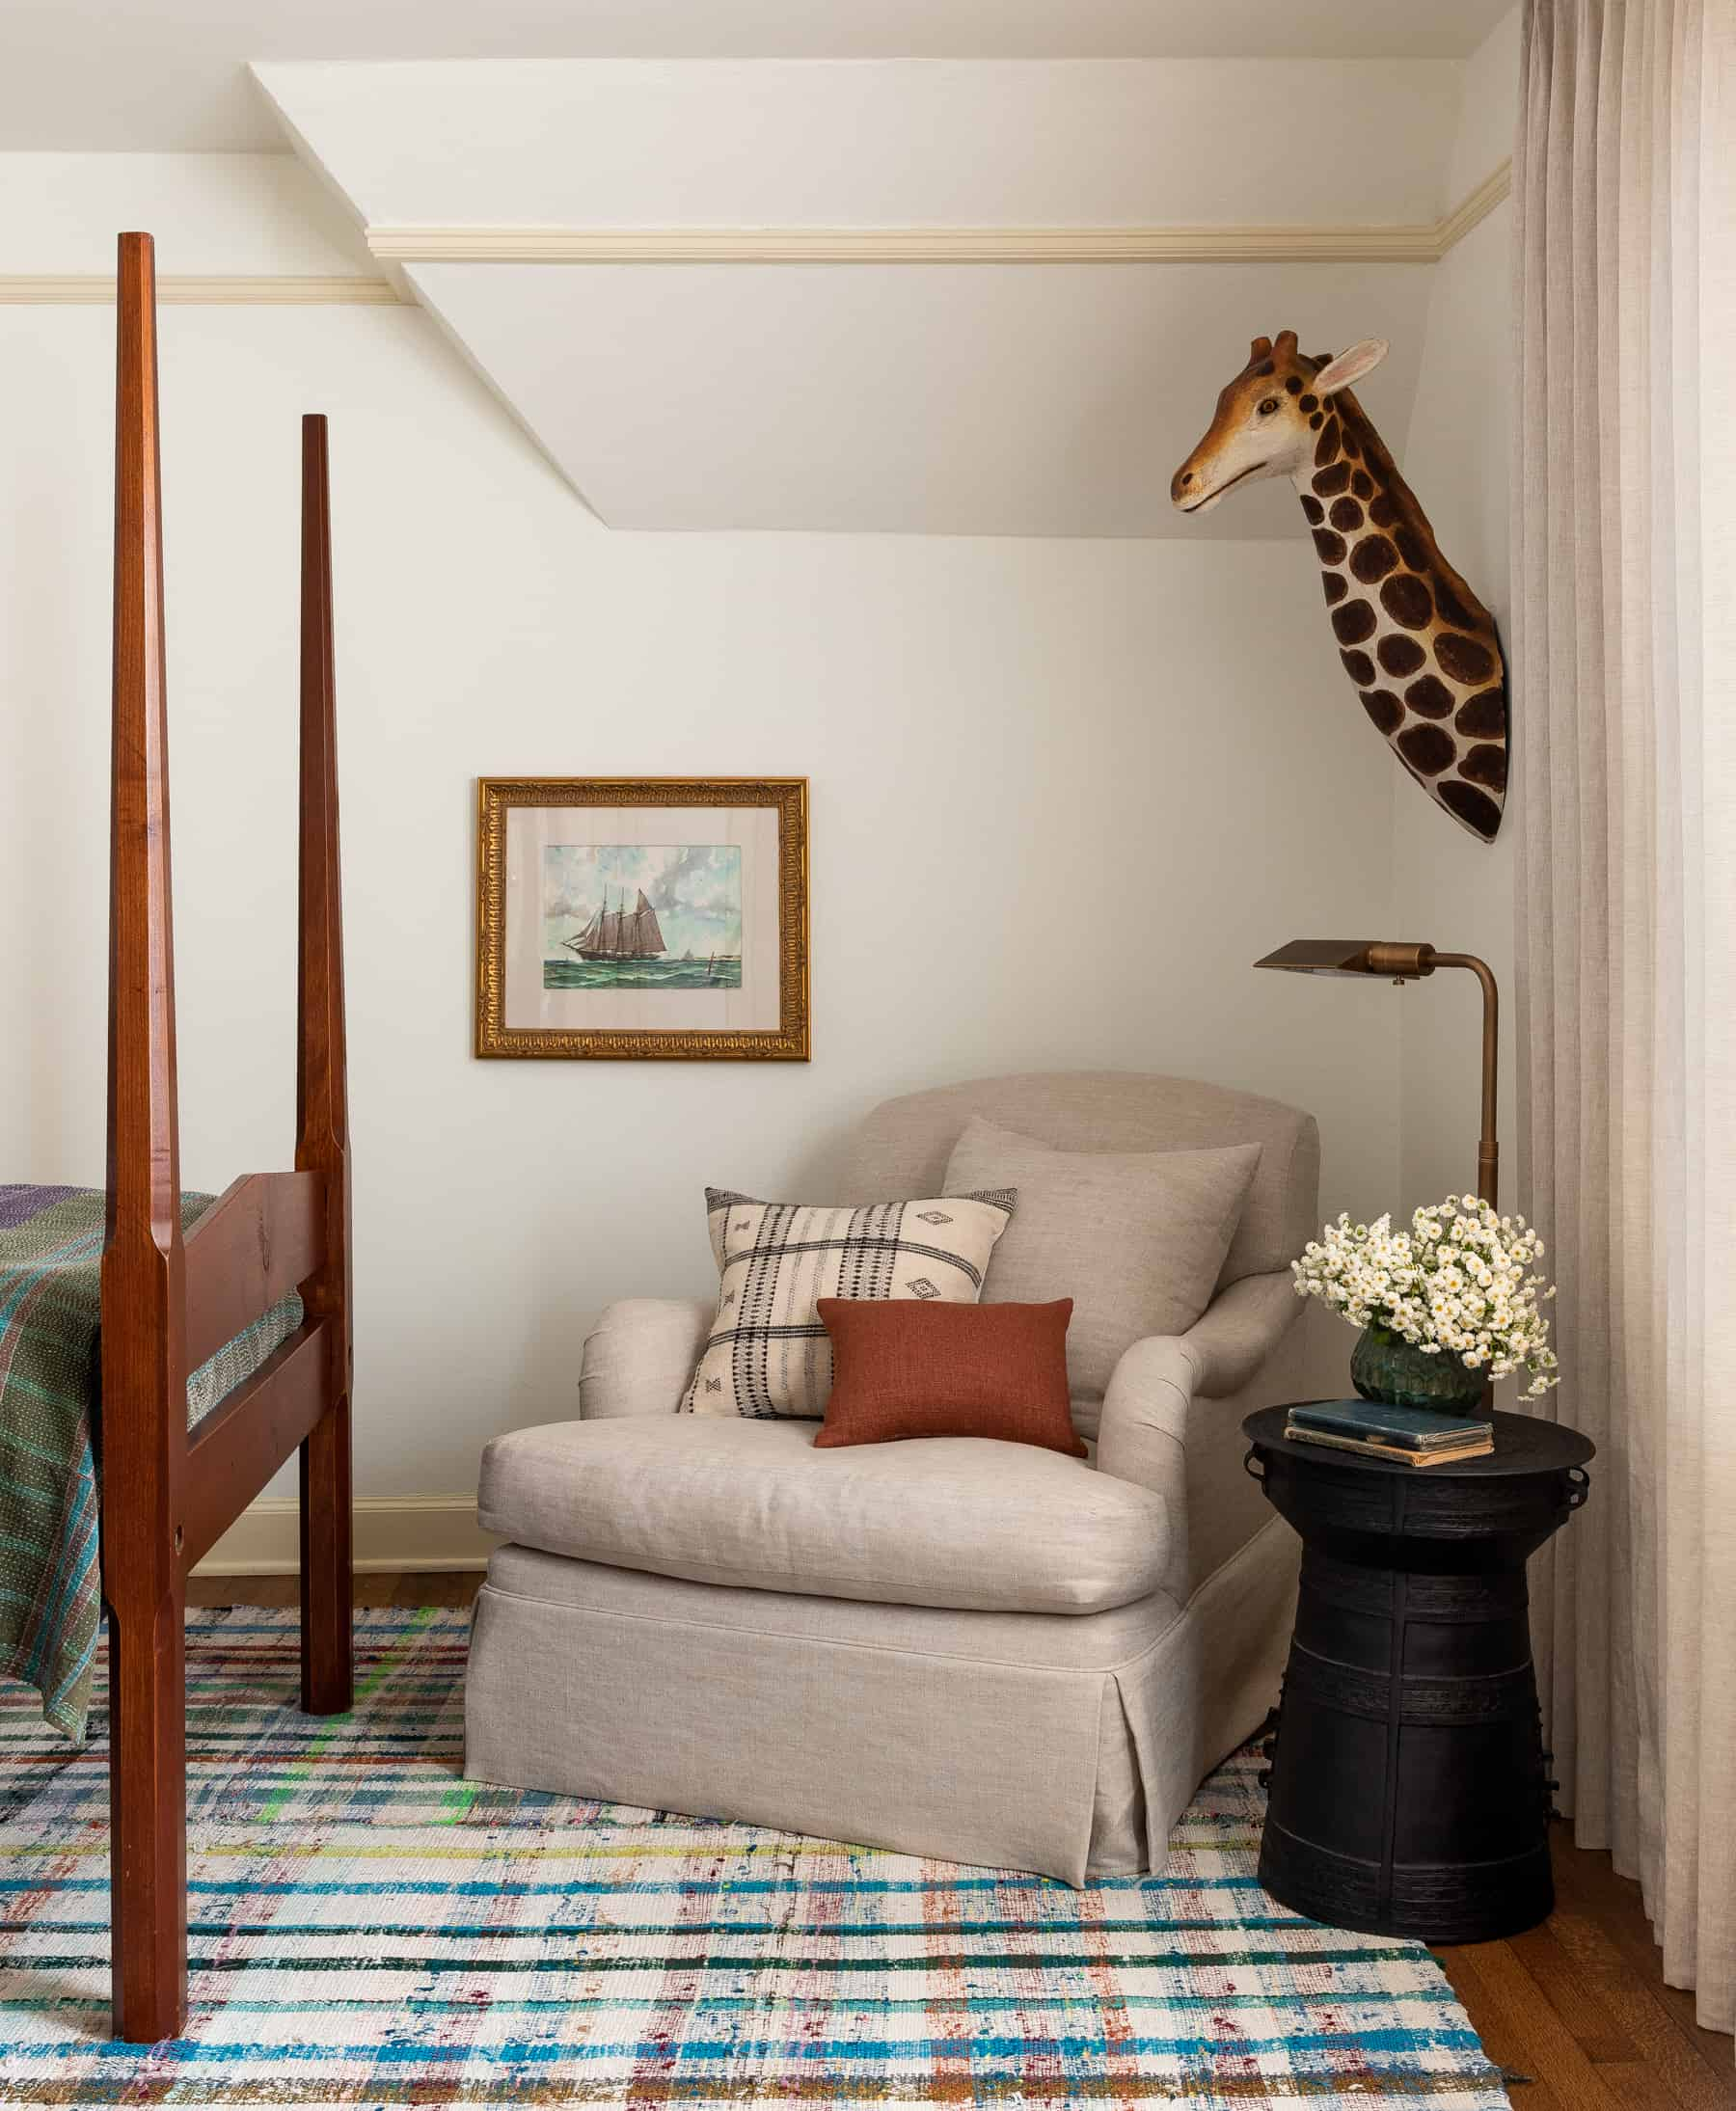 Heidi Caillier Design Seattle Interior Designer Kids Bedroom Matching Twin Beds Vintage Wood Beds Plaid Rug Kantha Blankets Custom Lampshade Yellow Painted Trim Heidi Caillier